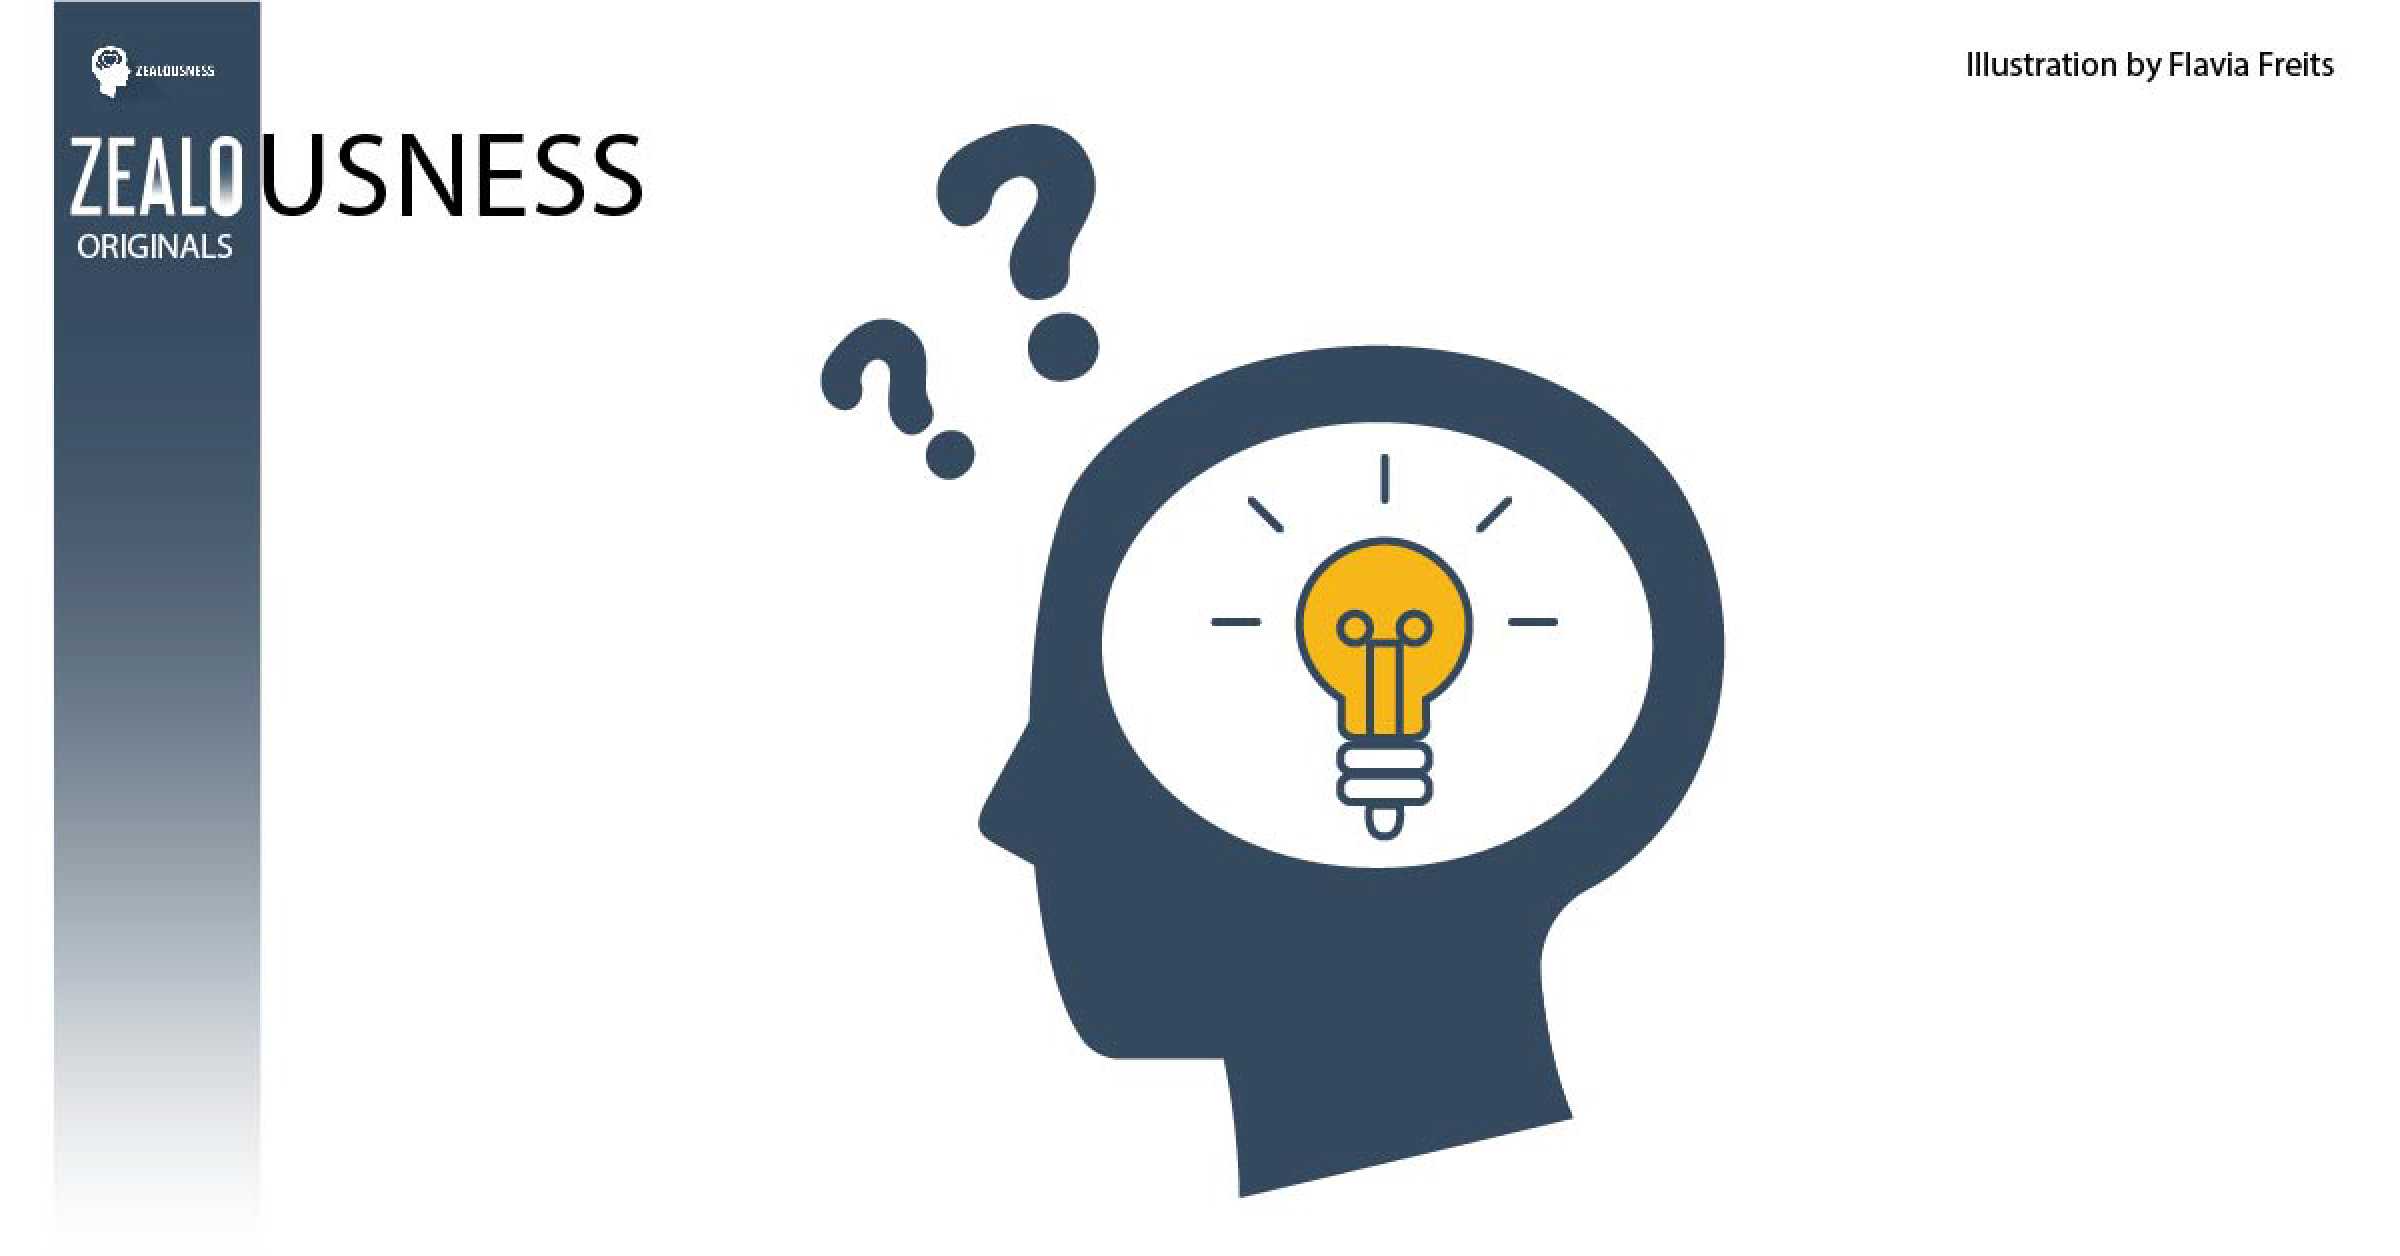 Light bulb flashing inside the head with question marks above it.